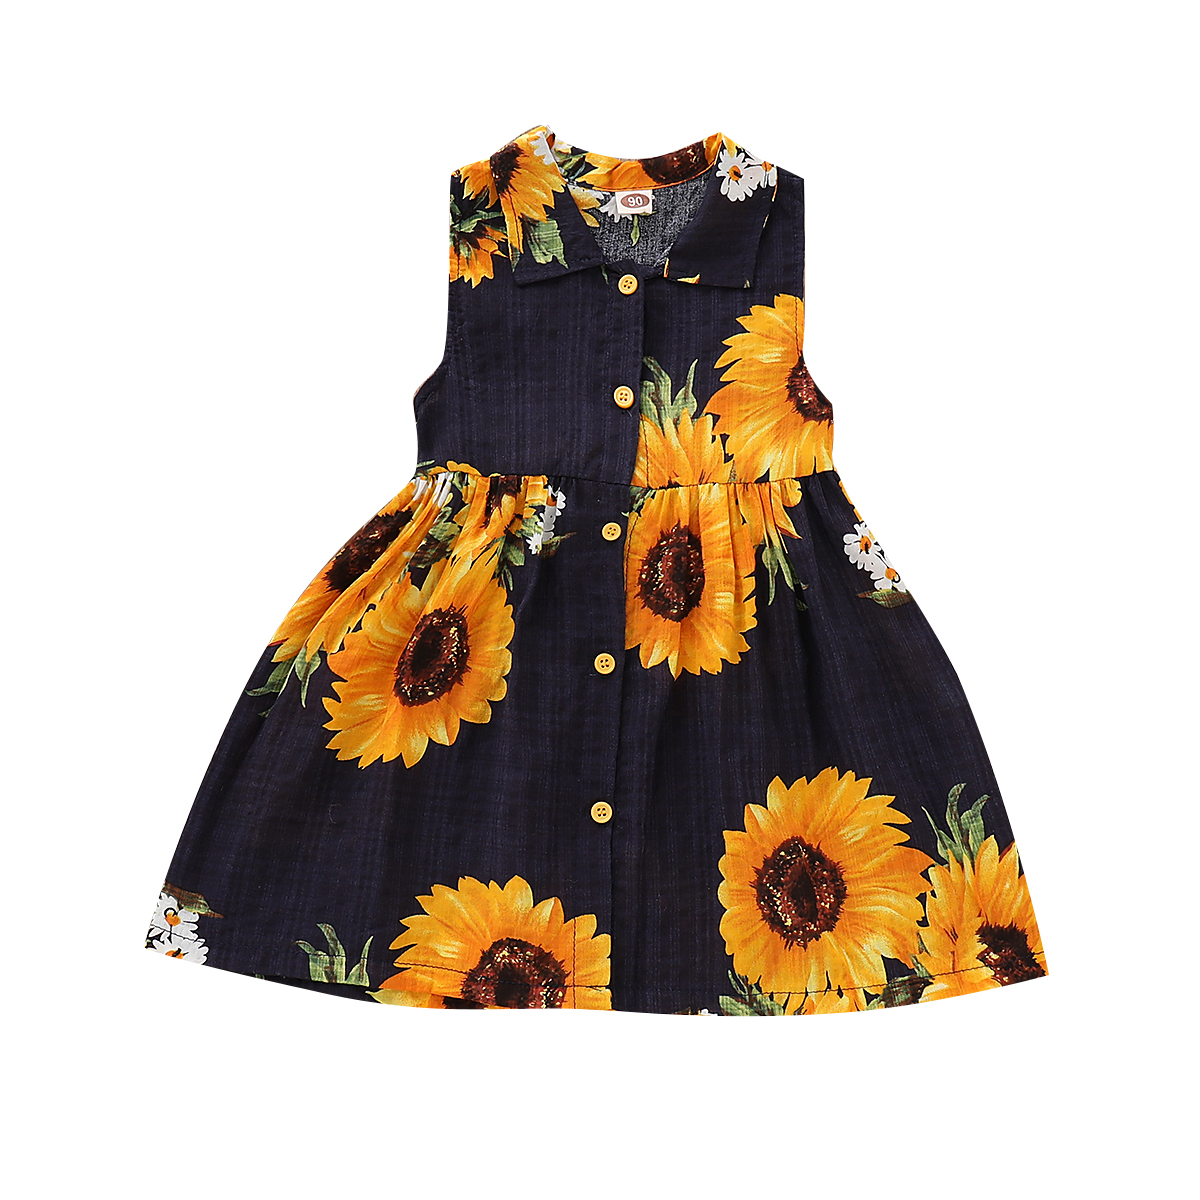 Summer Toddler Kids Baby Girl Sunflower Dress Sleeveless Princess Girls Boho Formal Pageant Party Dresses Sundress ClothesSummer Toddler Kids Baby Girl Sunflower Dress Sleeveless Princess Girls Boho Formal Pageant Party Dresses Sundress Clothes